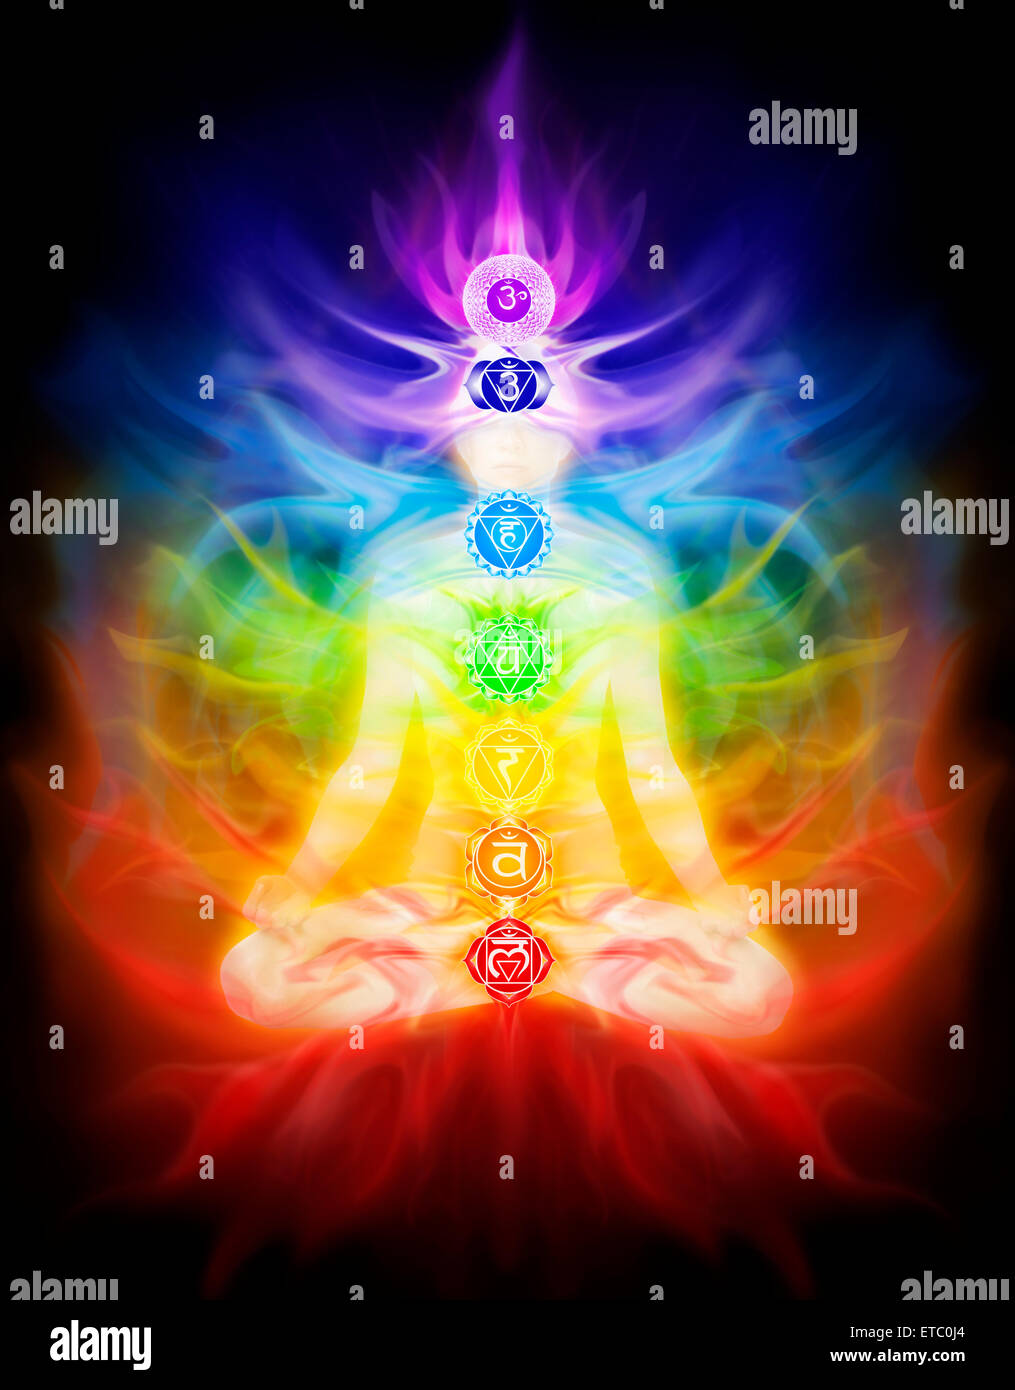 Woman sitting in lotus pose with seven chakra symbols and emanating colored energy flow overlayed on her silhouette - Stock Image